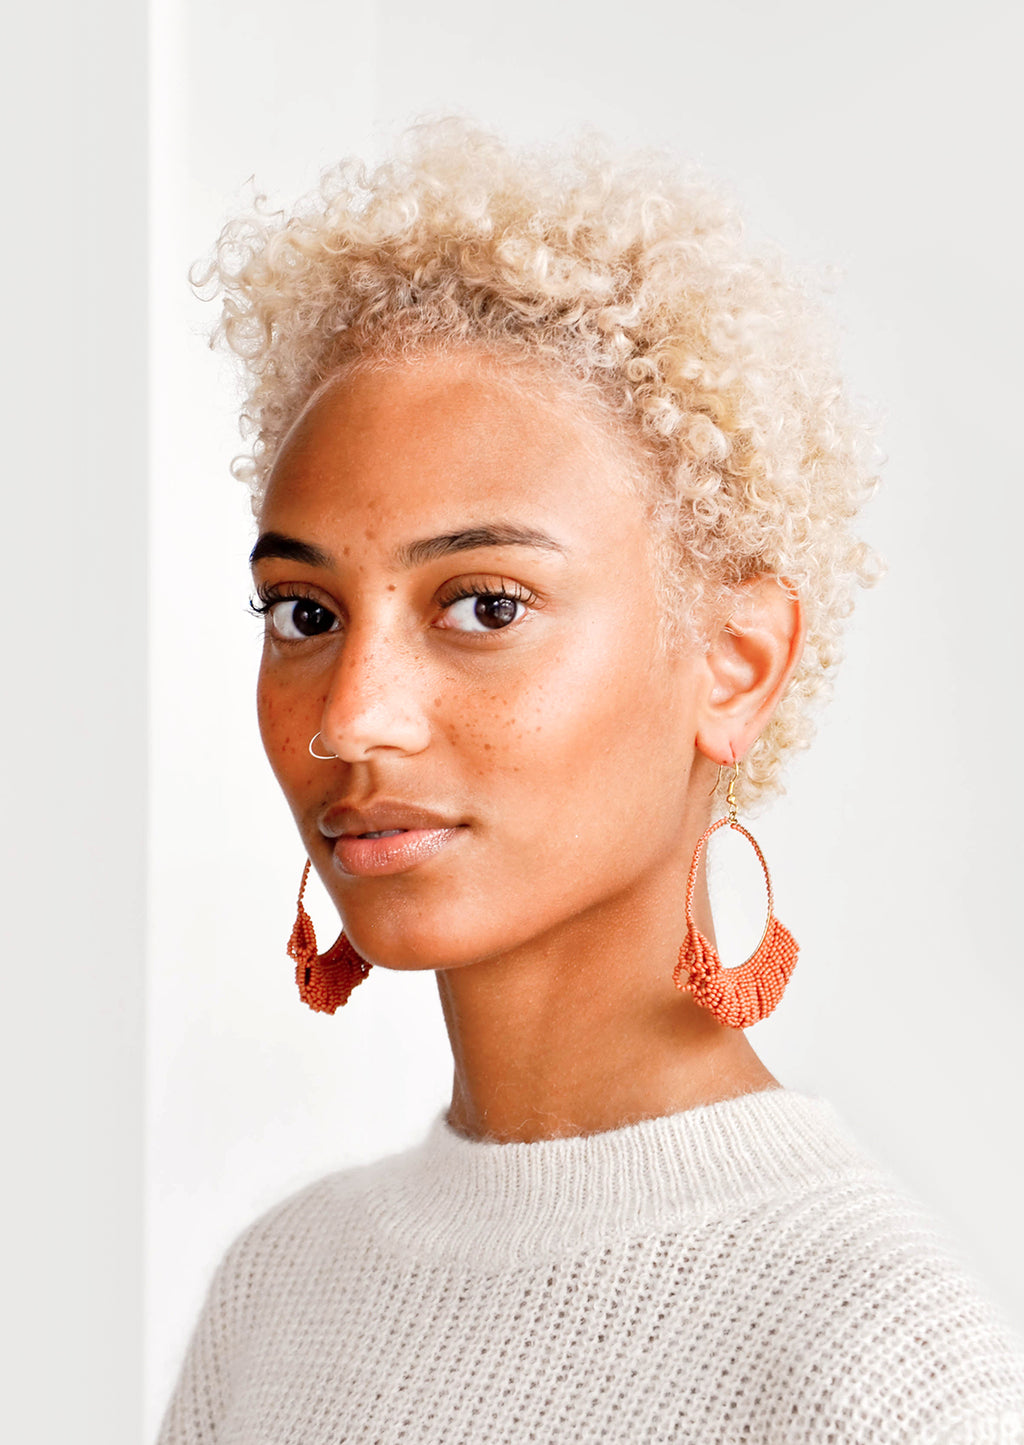 2: Model shot of woman wearing earrings and a white top.